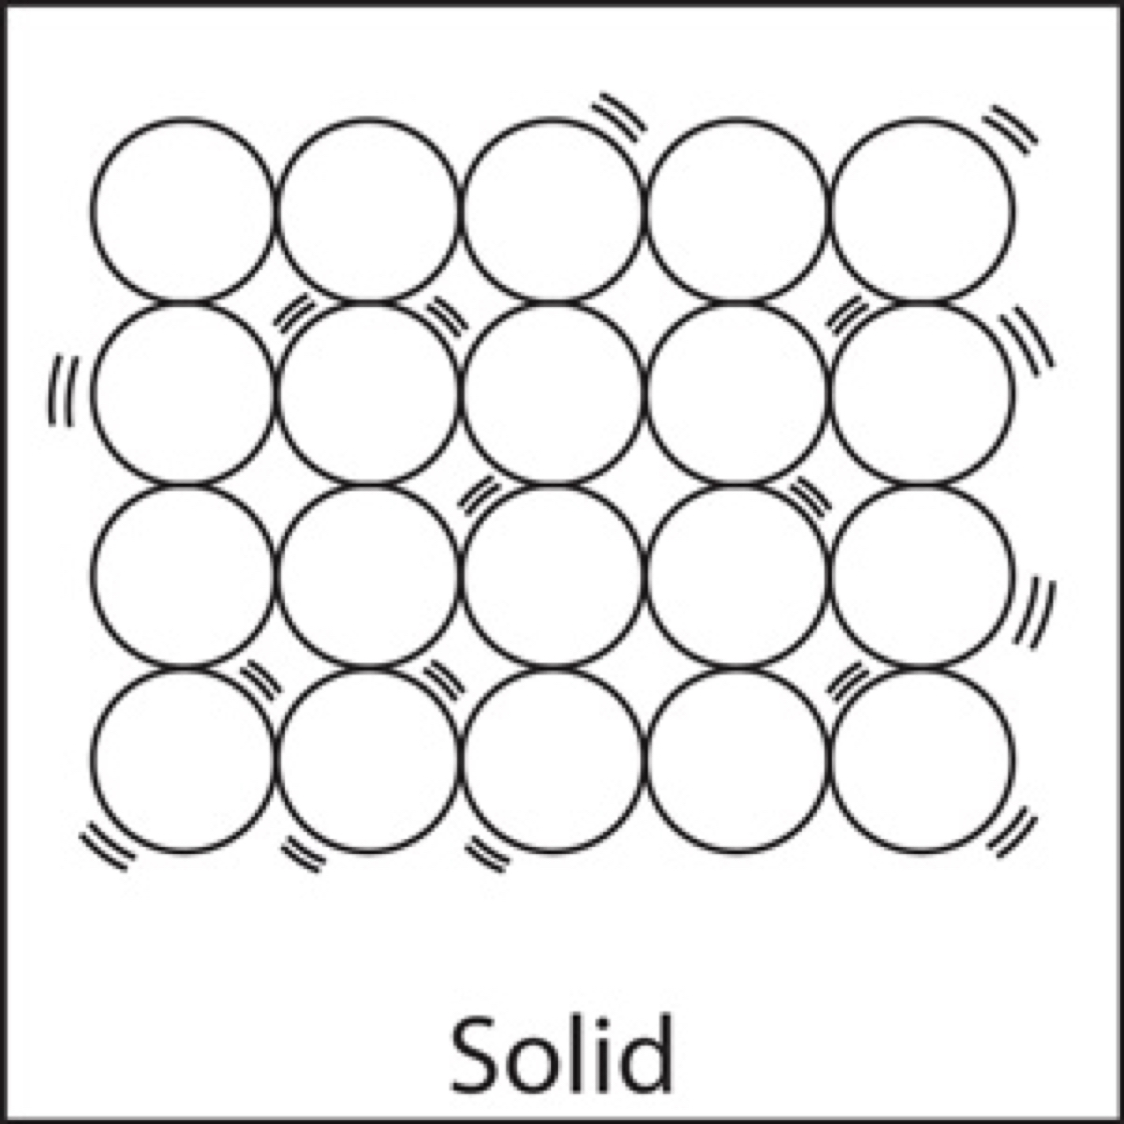 Solid Particles Vatozozdevelopment